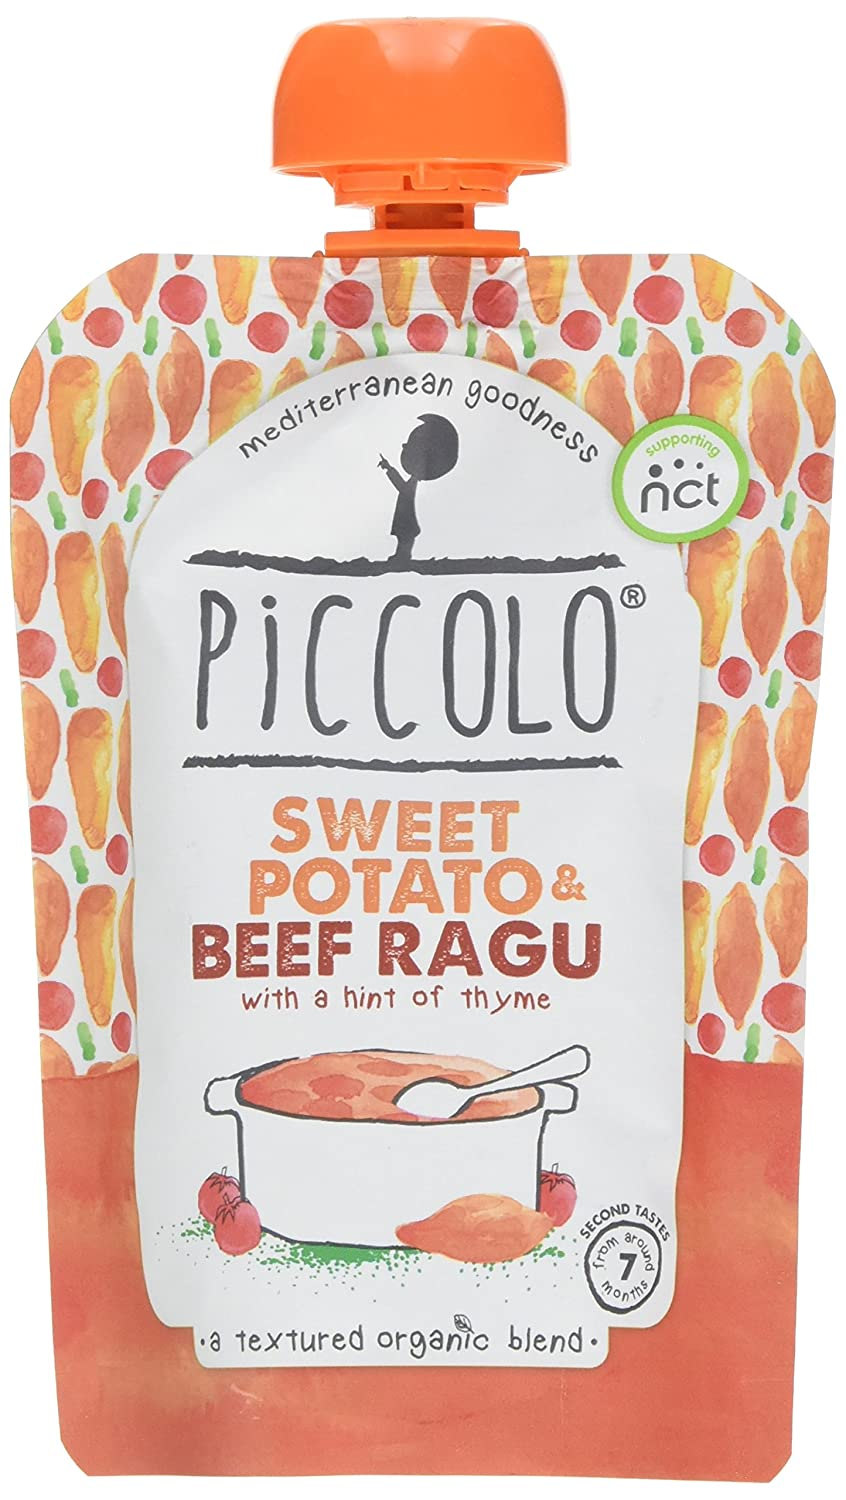 Piccolo Stage 2 Sweet Potato and Beef Ragu Puree, 130 g, Pack of 7 PIC6002